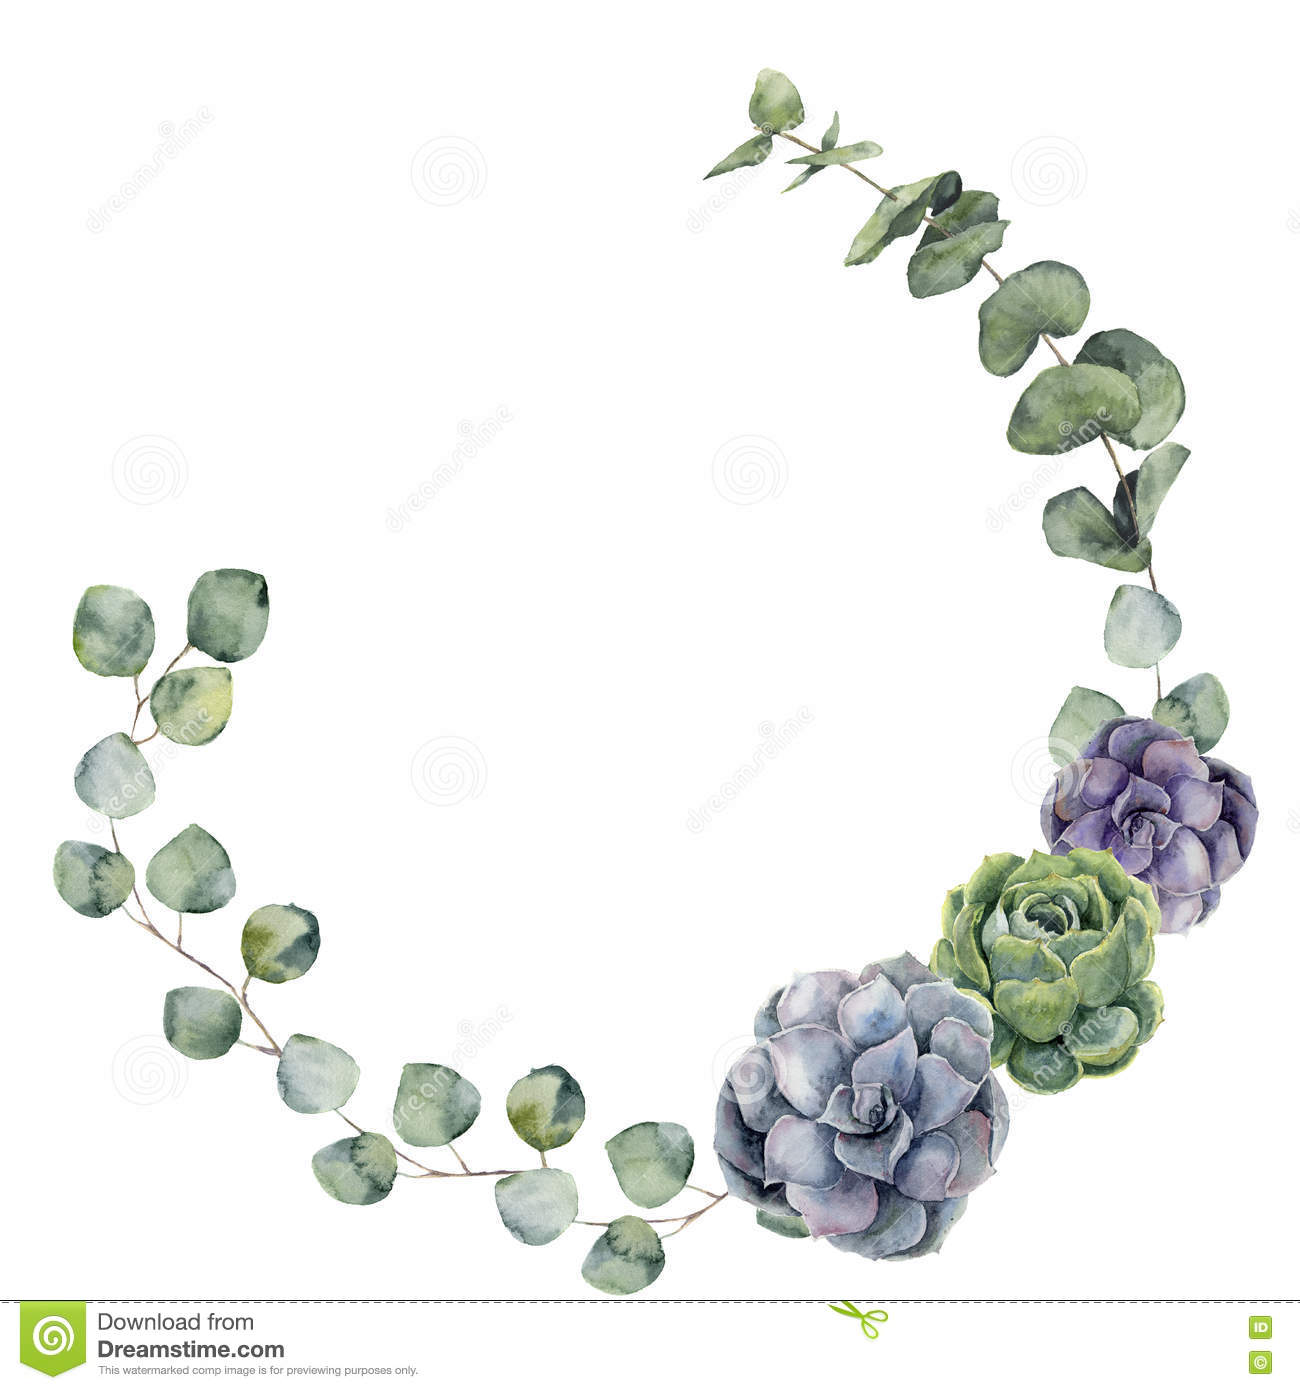 Watercolor Floral Border With Baby And Silver Dollar Eucalyptus Leaves Stock Photo